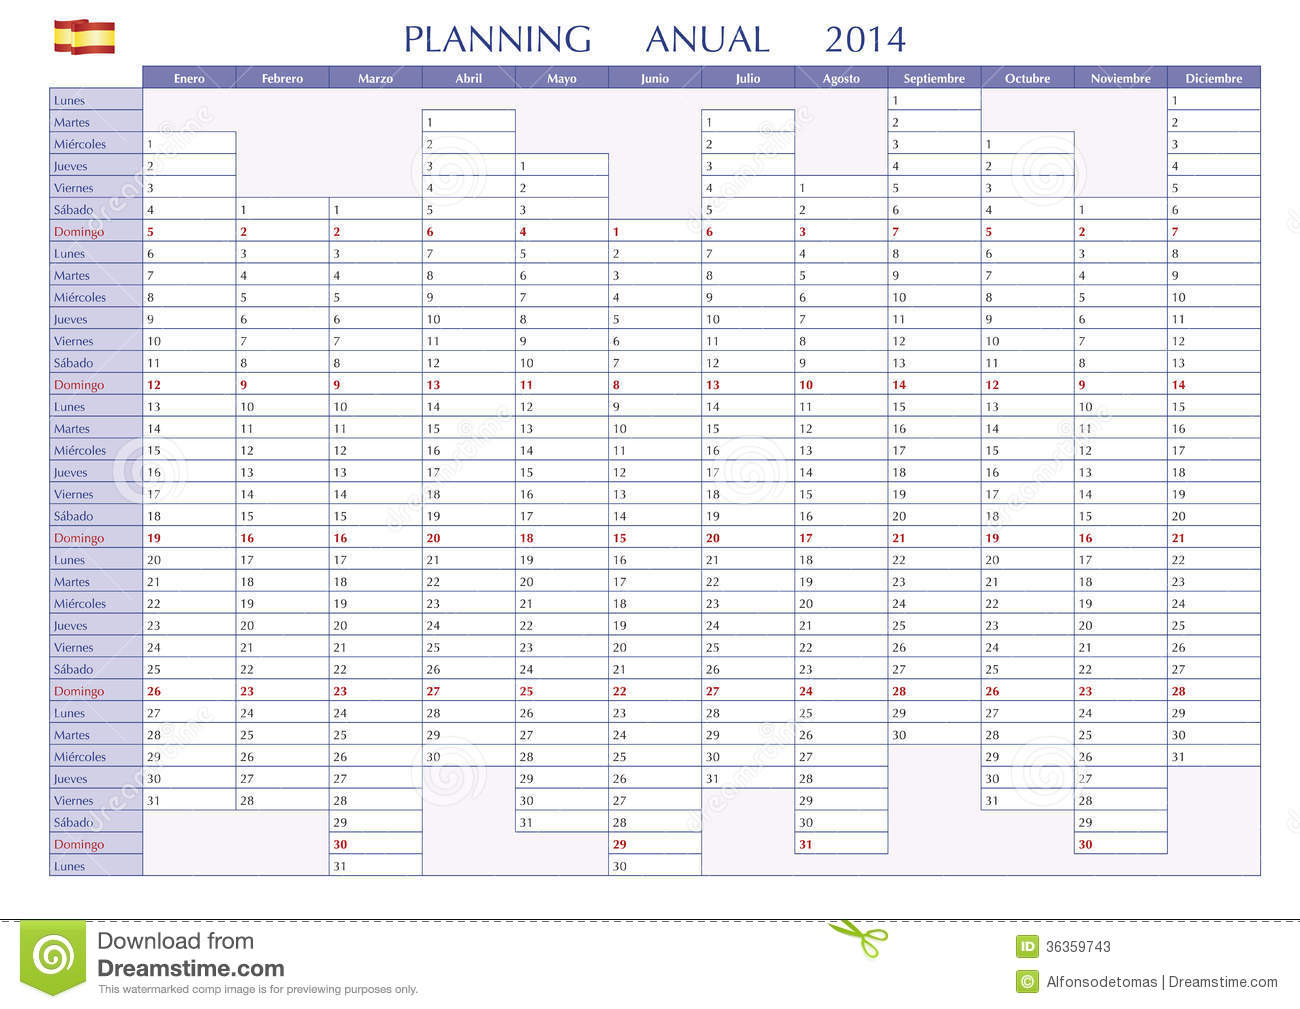 yearly planning calendar template 2014 planning 2014 spanish stock vector illustration of july